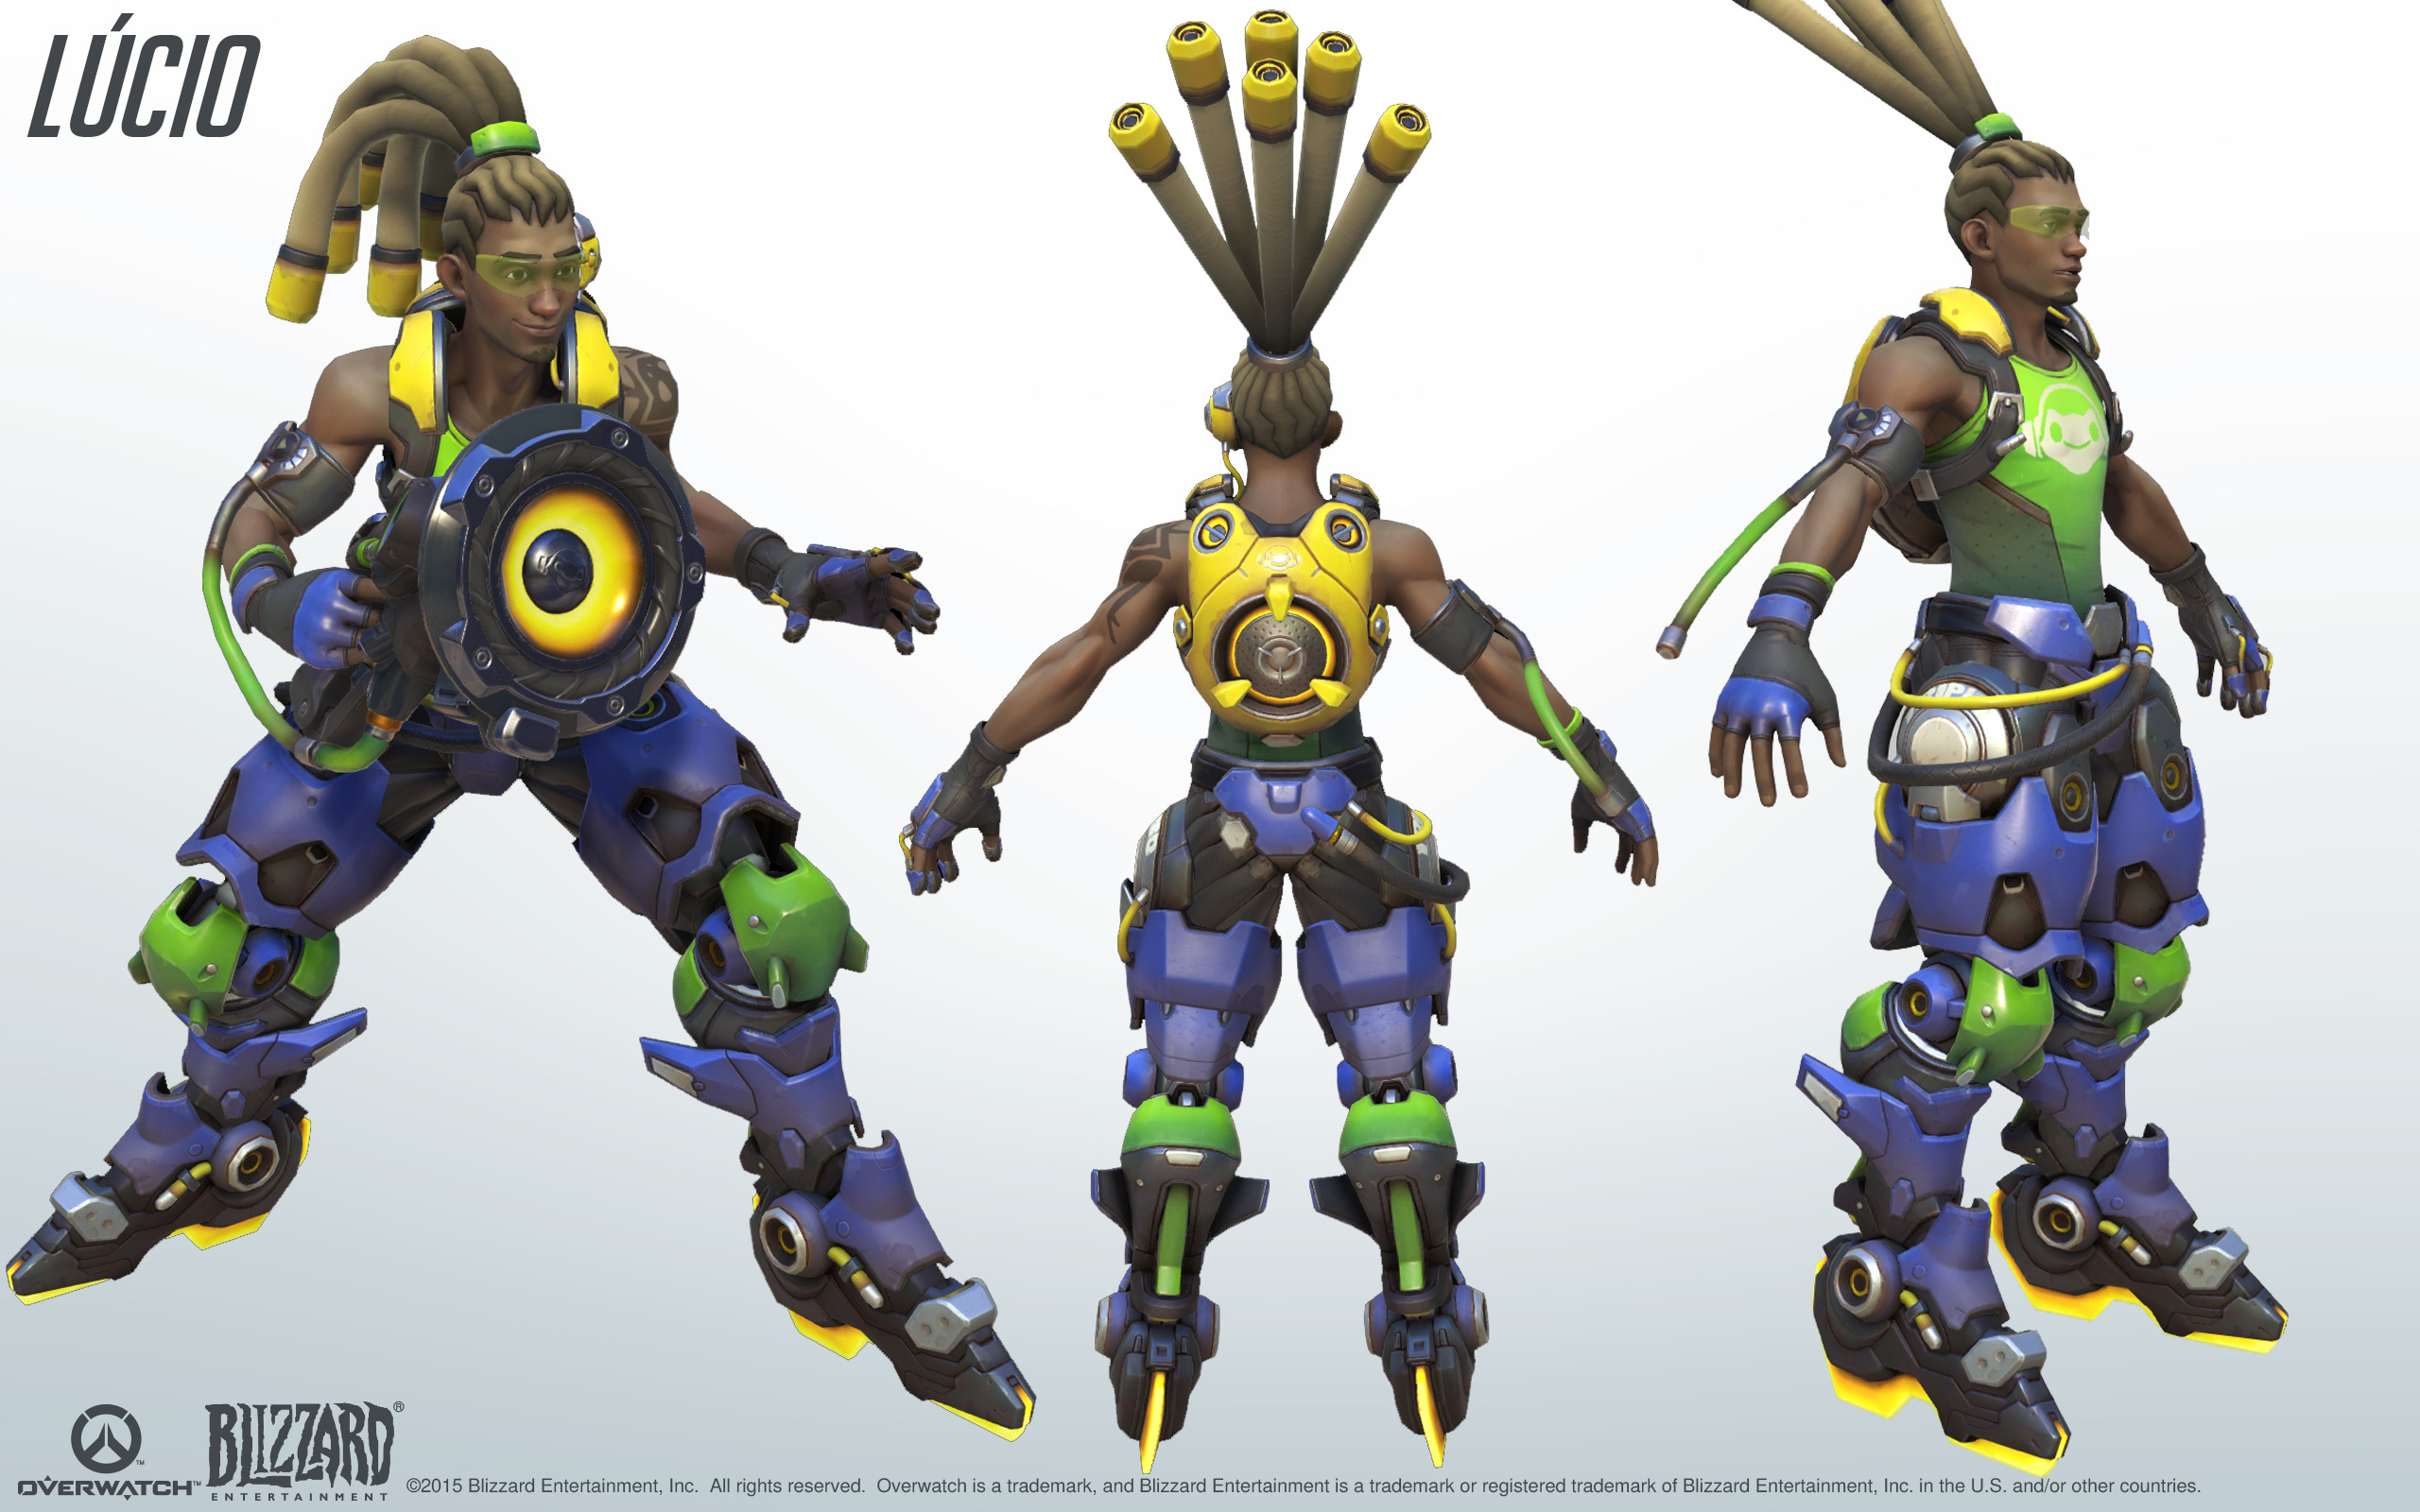 Lucio Cosplay Reference Guide 3